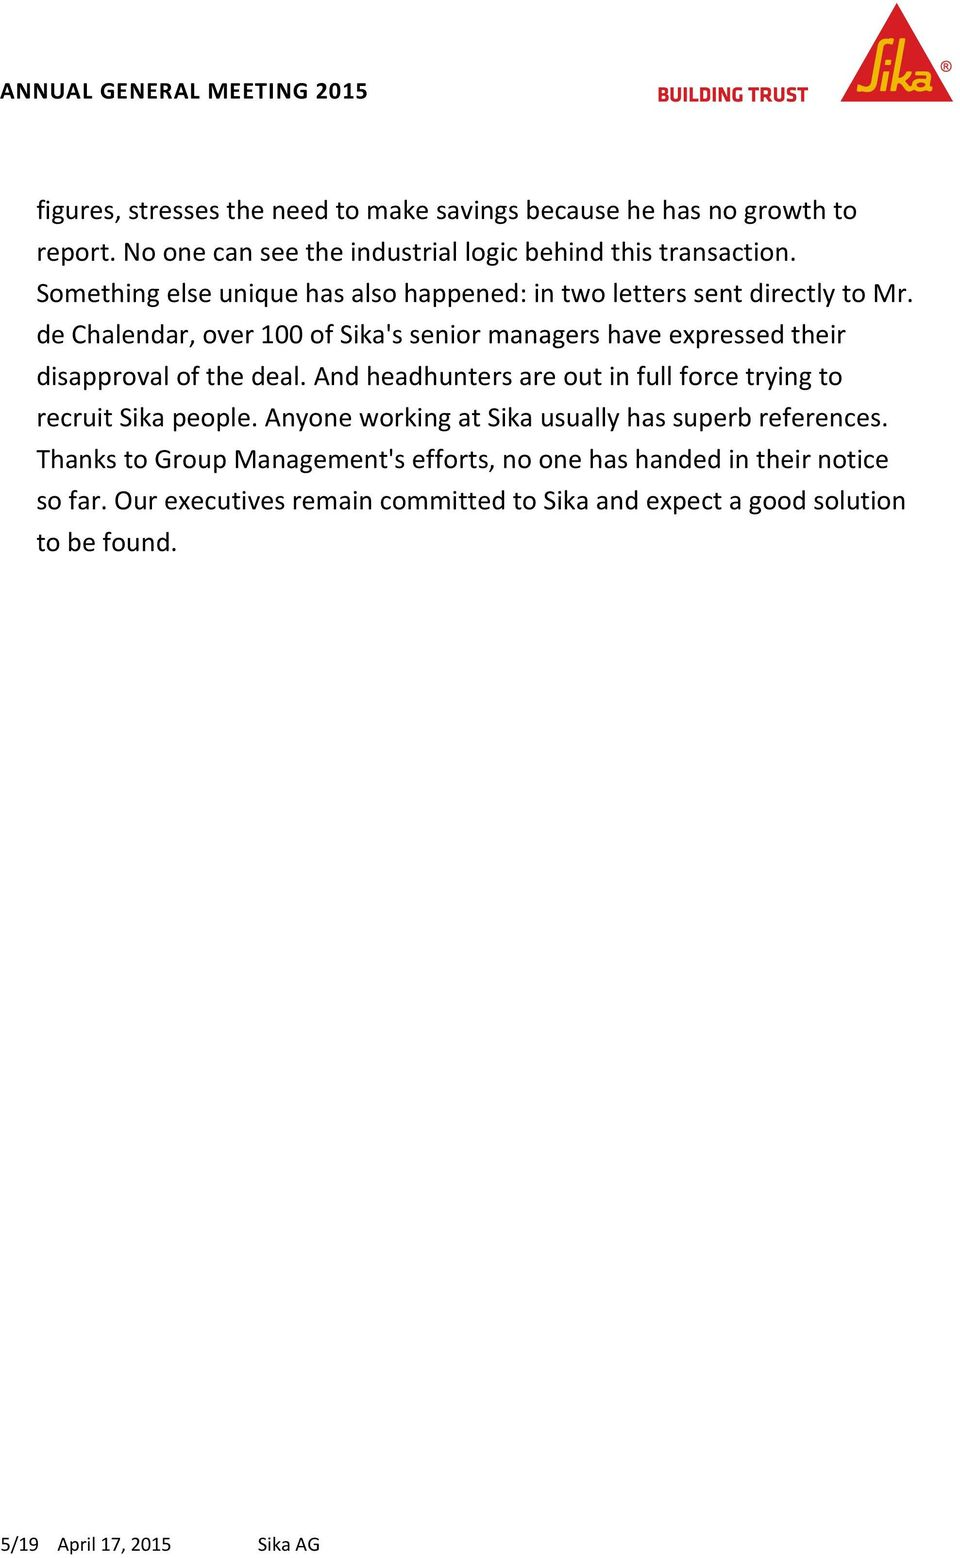 de Chalendar, over 100 of Sika's senior managers have expressed their disapproval of the deal.